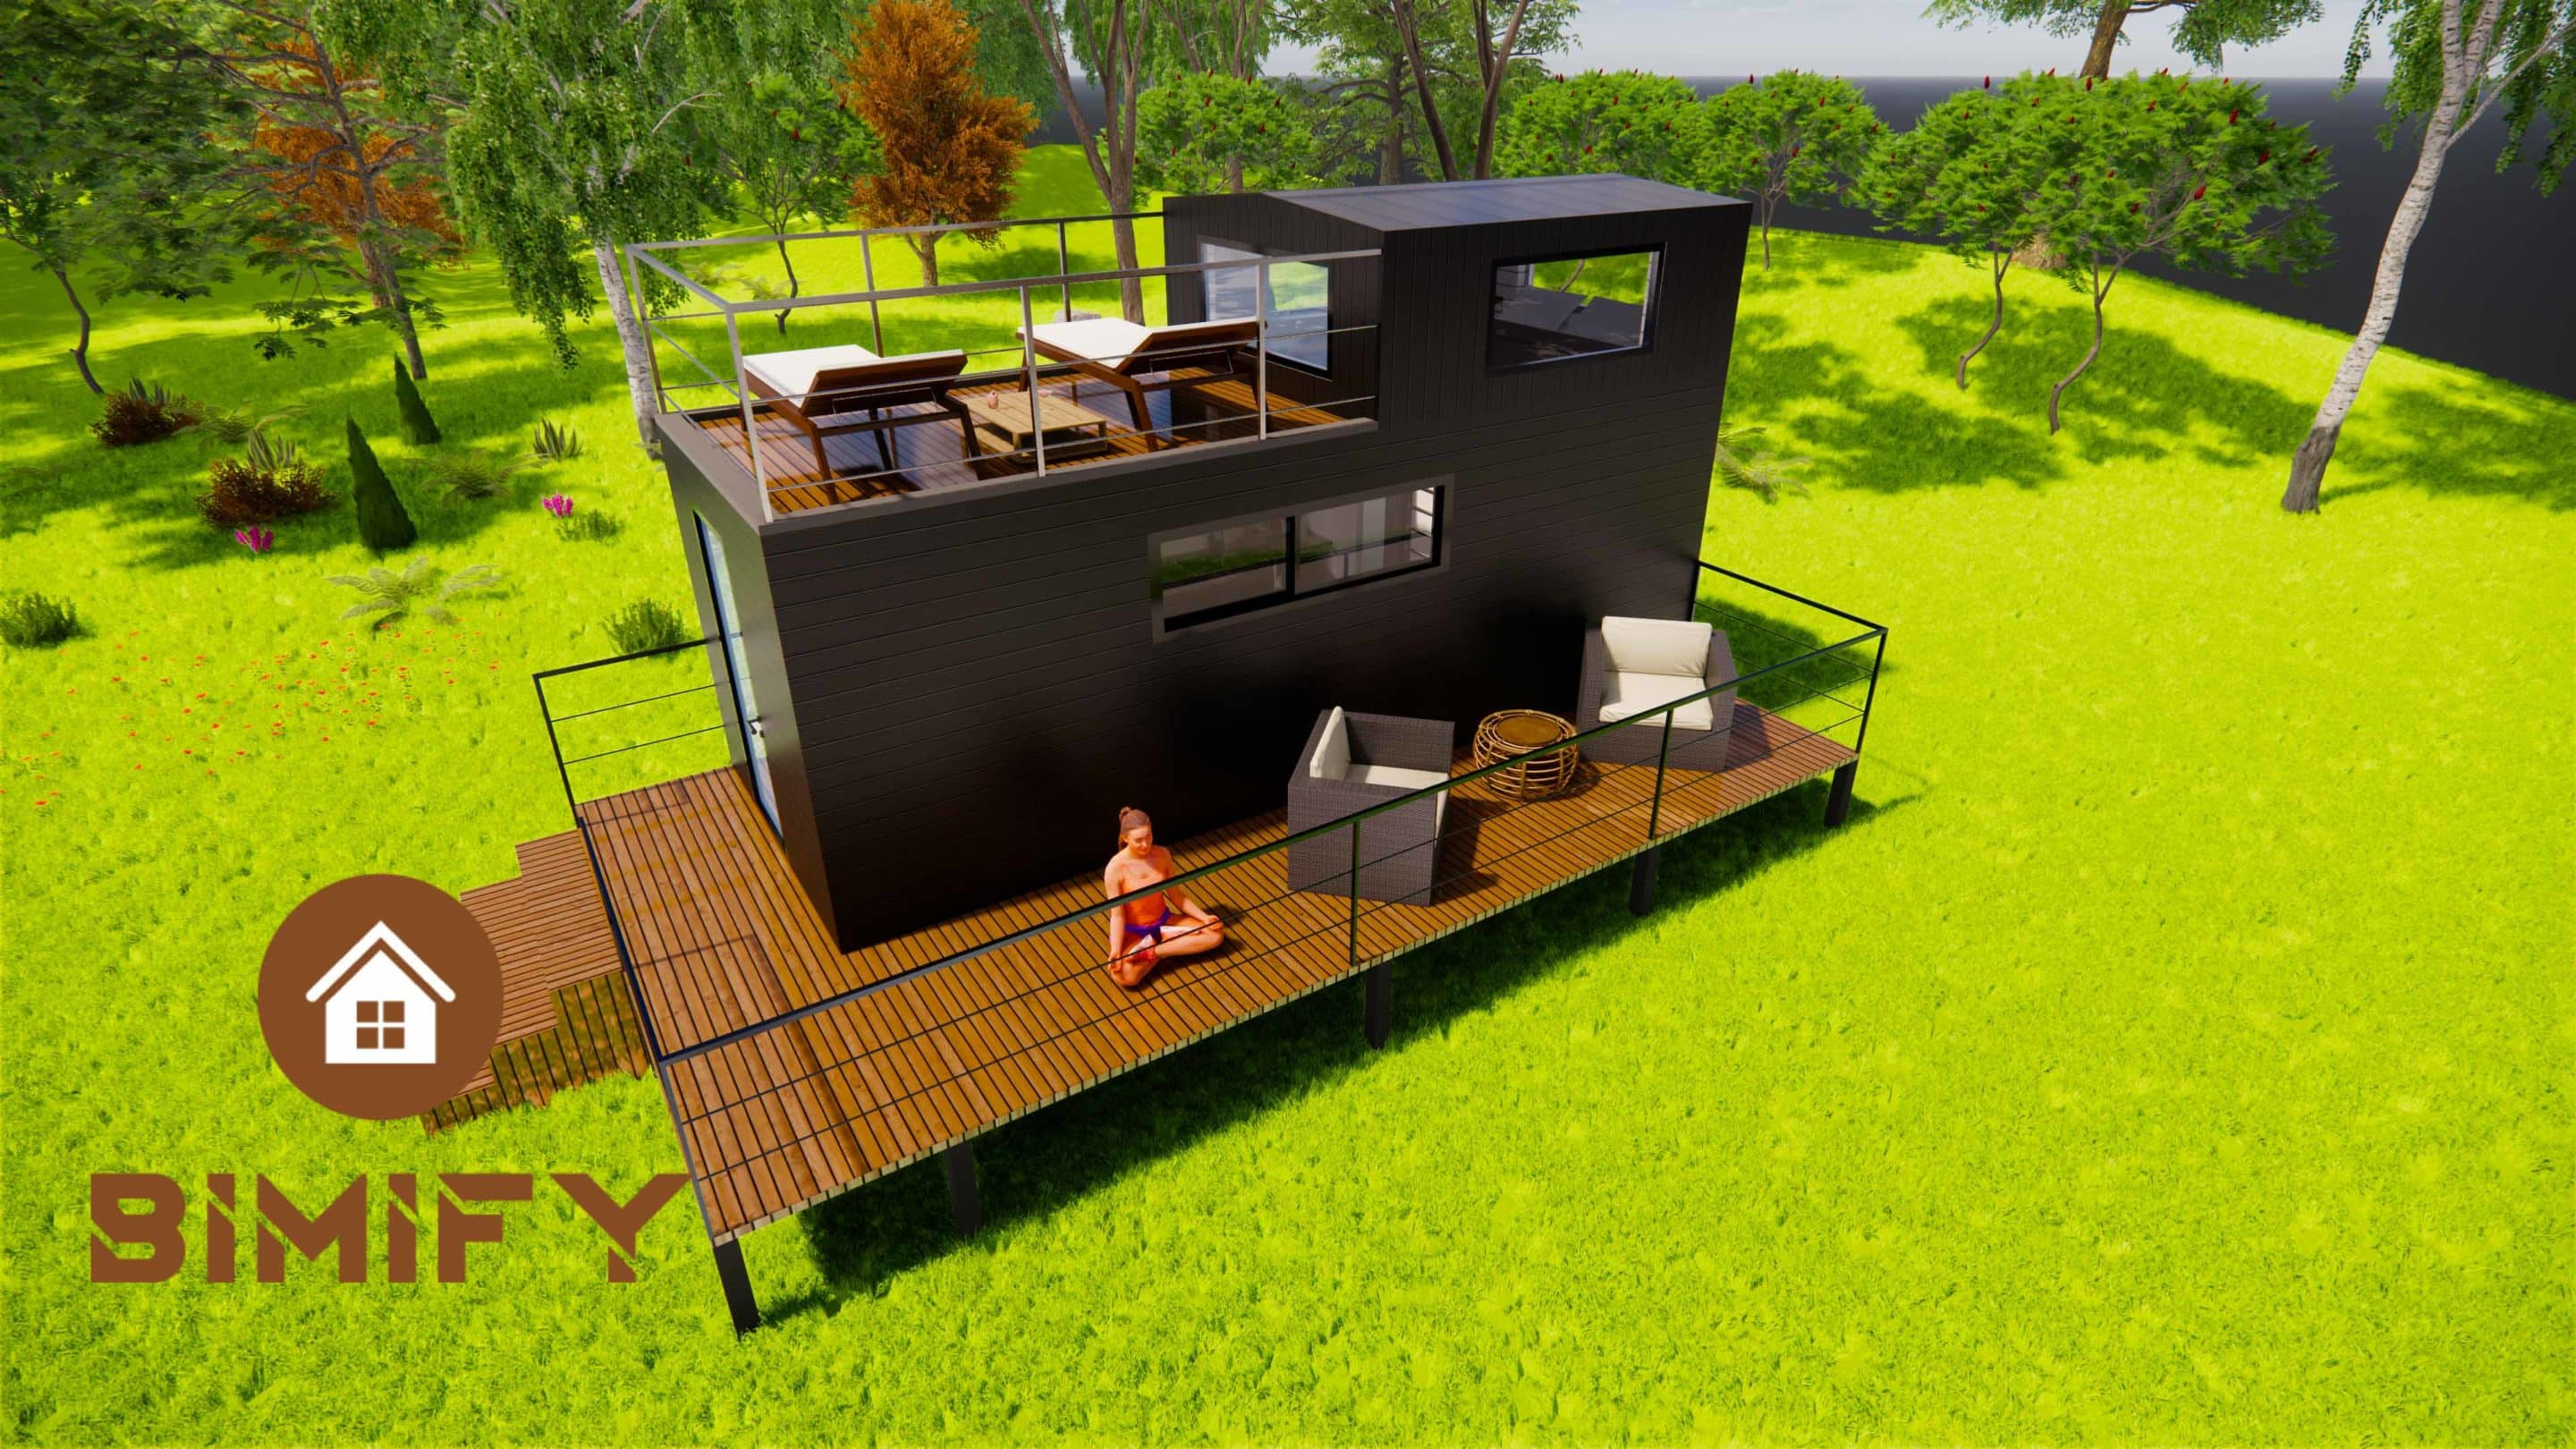 TinyDuo 660 con terraza accesible - TIny House France (18)